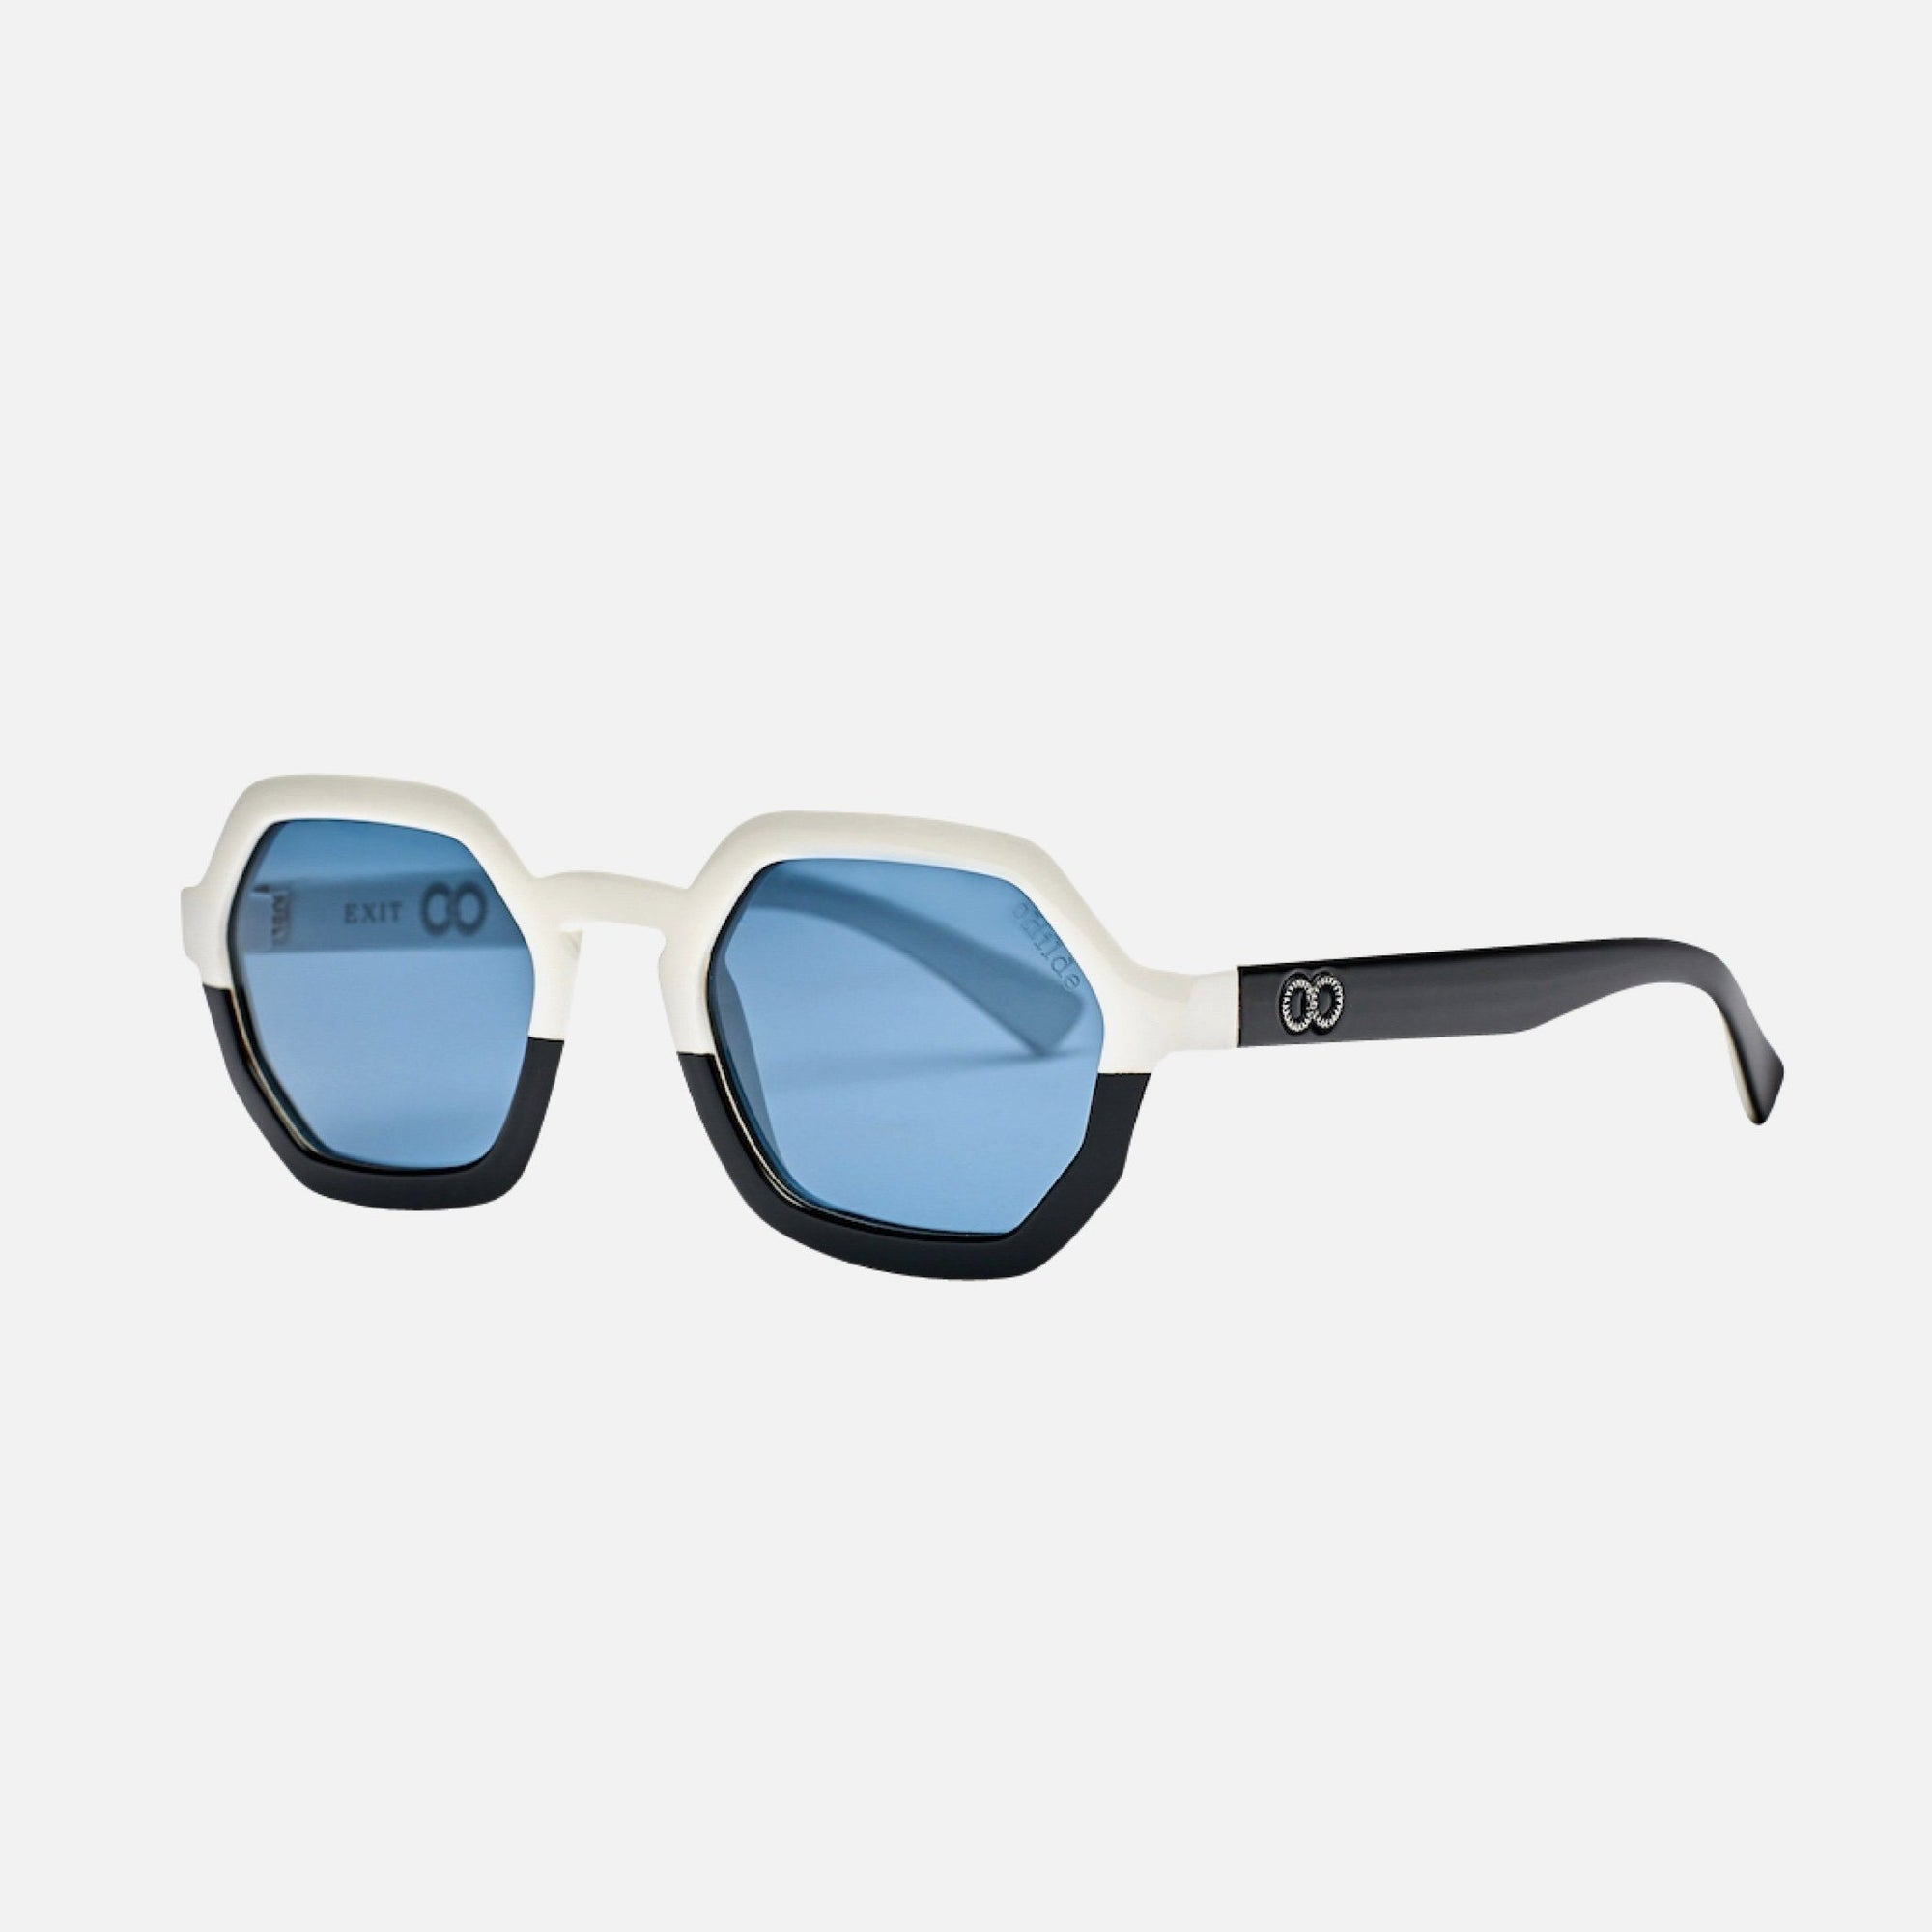 EXIT - Gloss Black/Gloss White Top Deck | Blue Telluric Lens